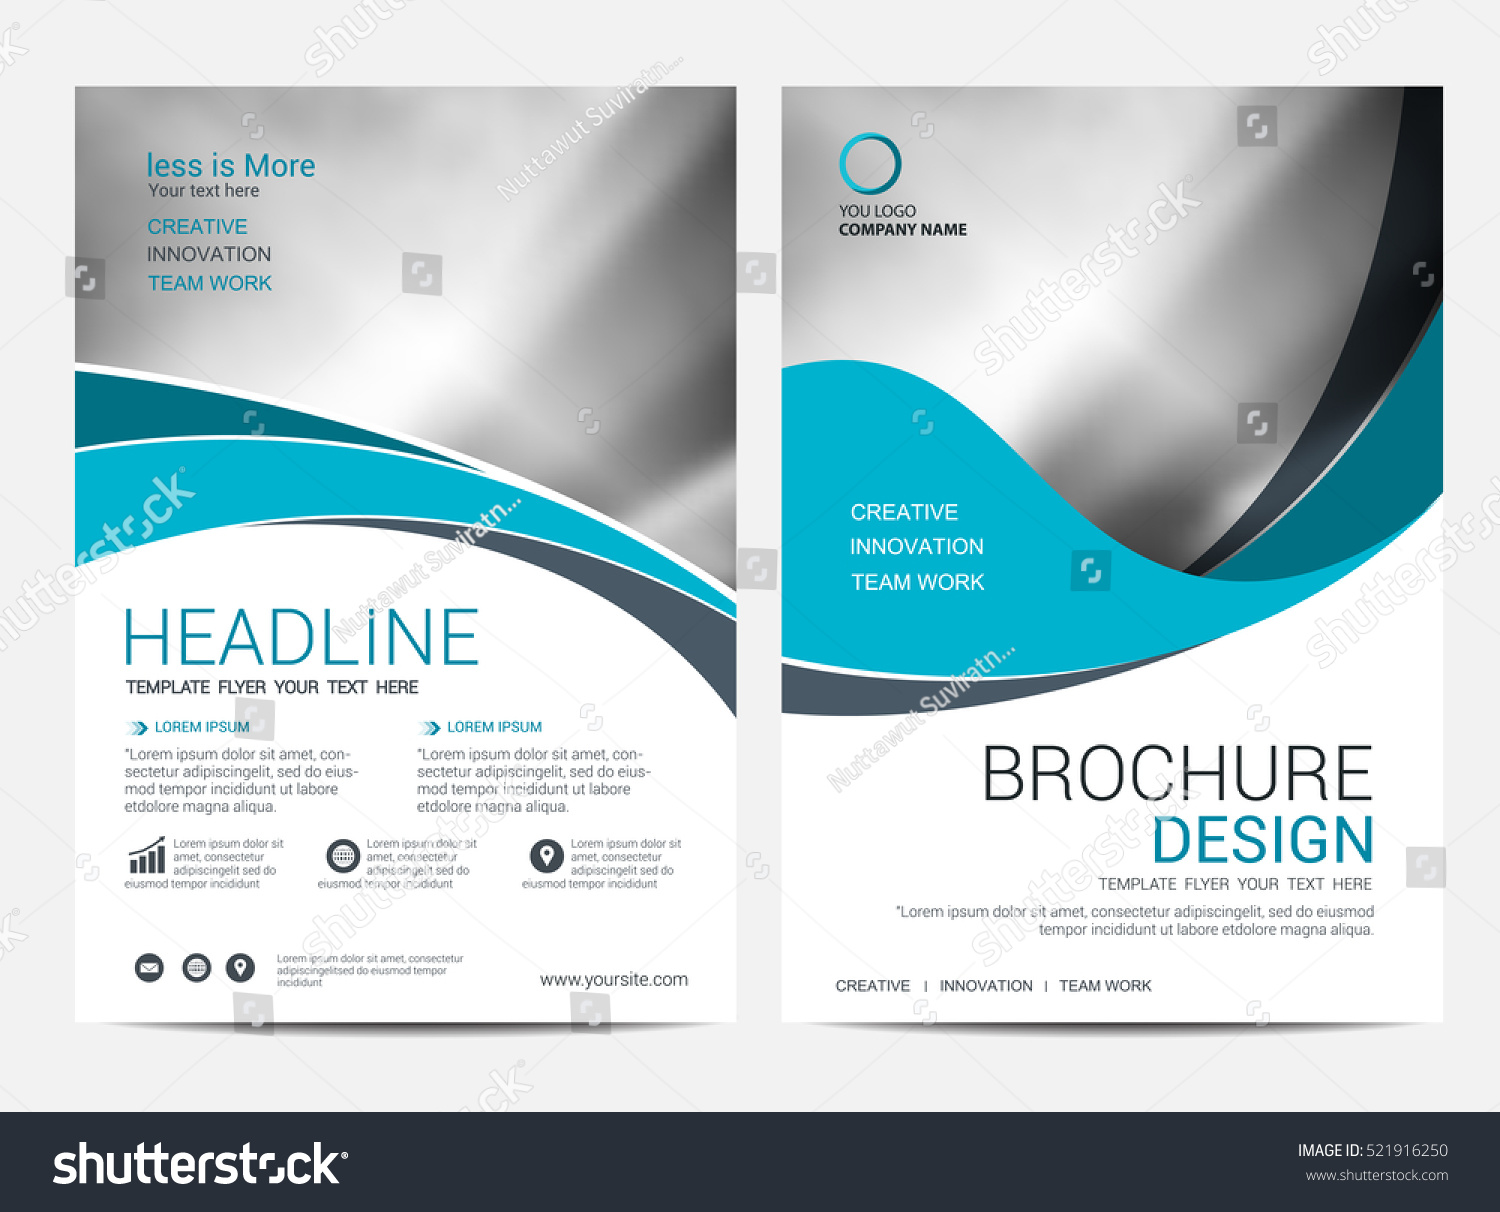 brochure layout template - brochure layout design template annual report stock vector